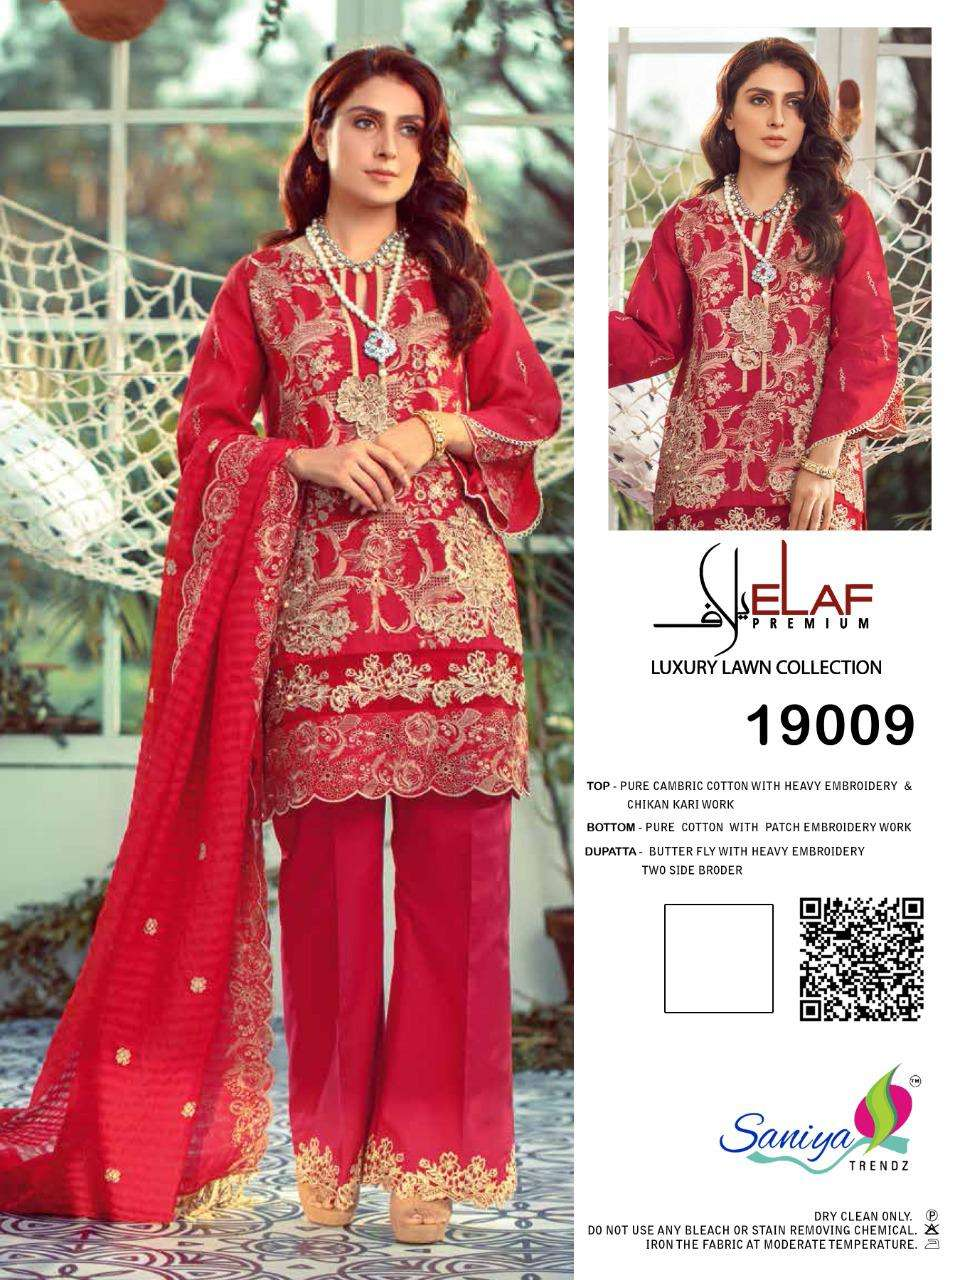 Saniya Trends Elaaf Vol 3 Fancy pakistani Suit New patterns